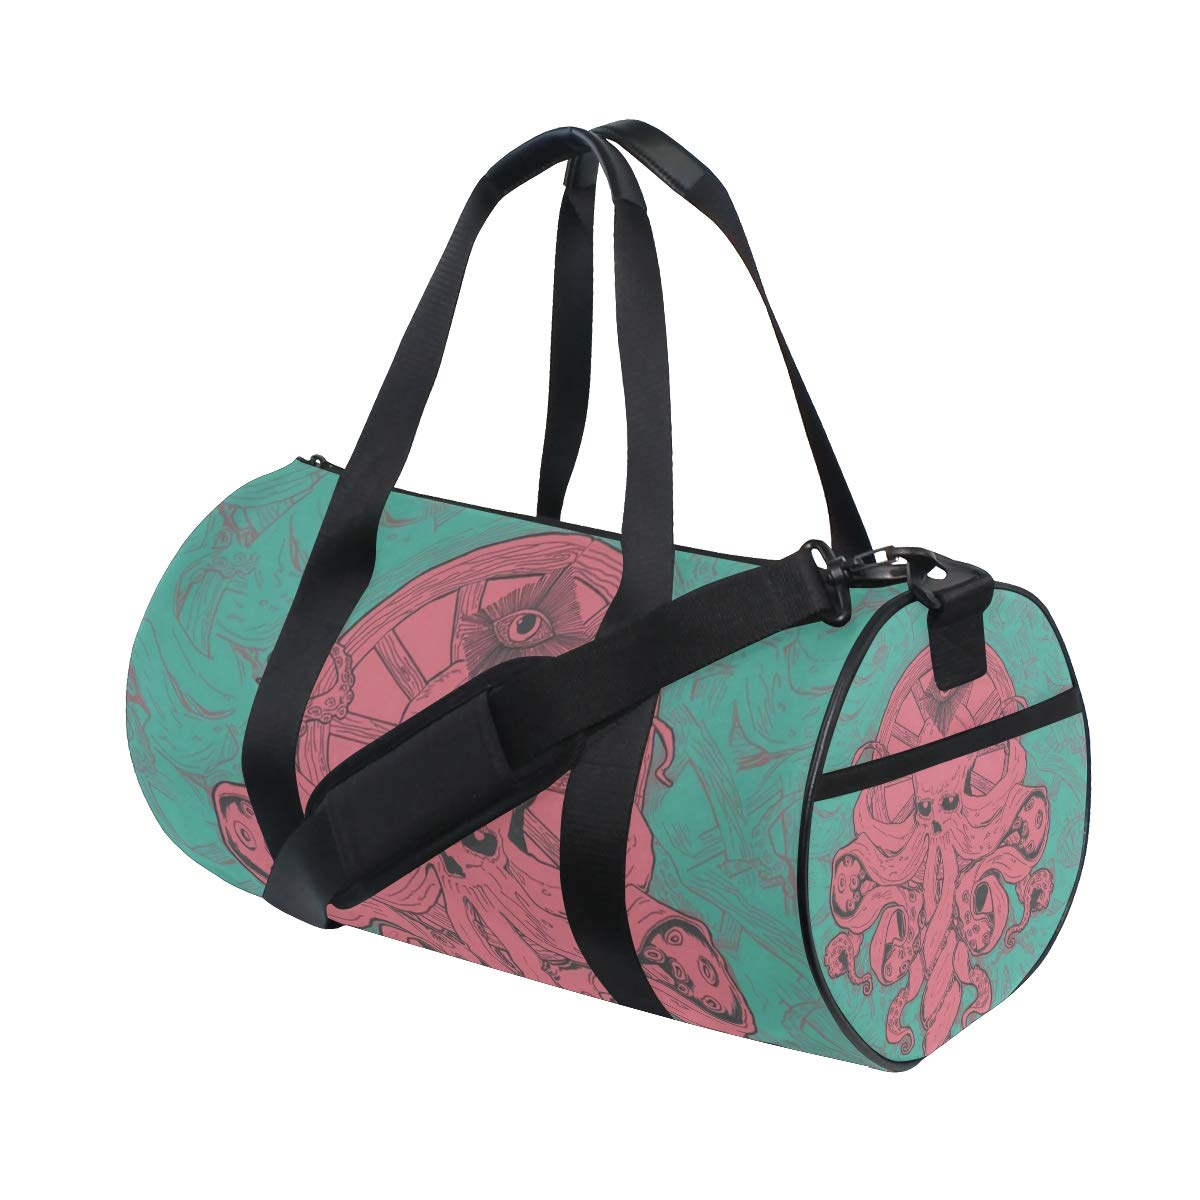 Travel Weekender Duffel Bag for Man and Woman Gym Bag with Traditional Octopus Turquoise Print